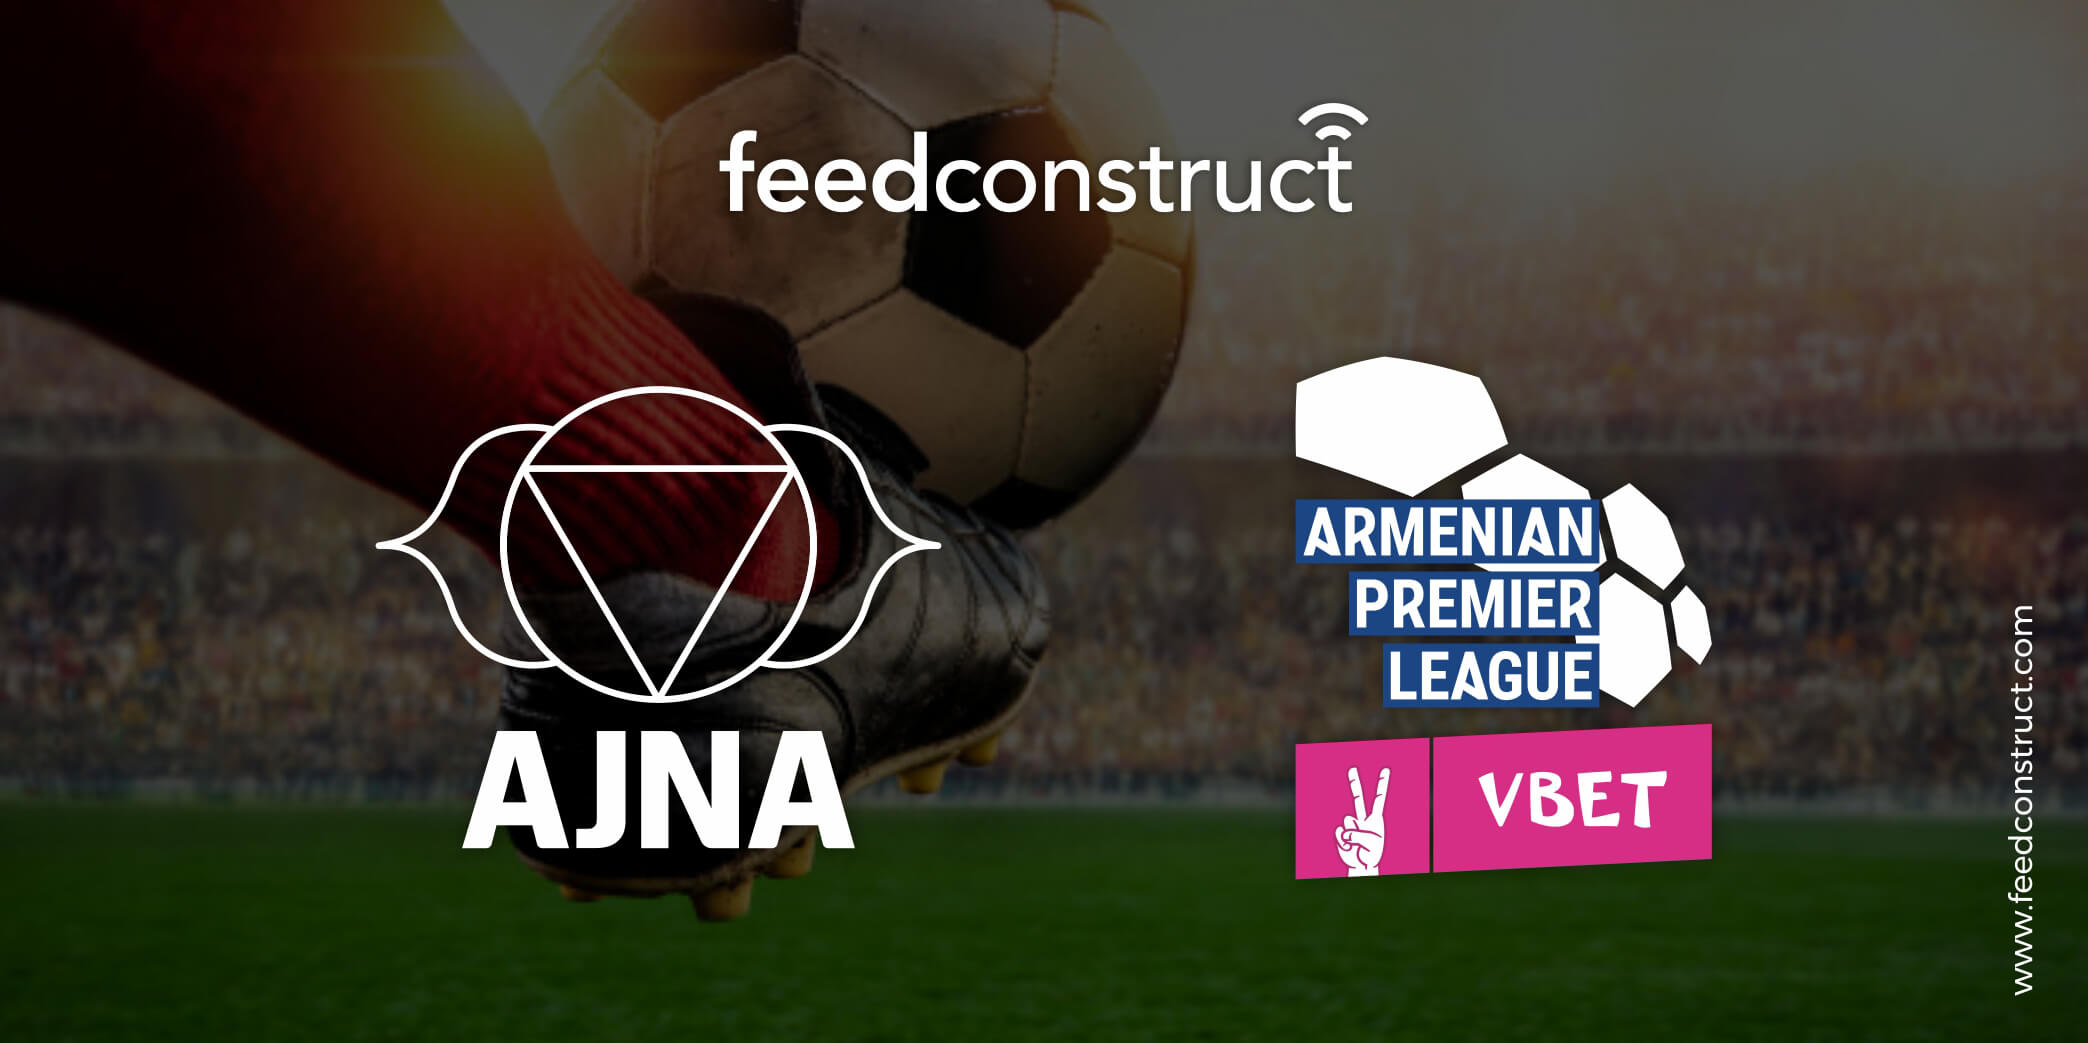 AJNA is coming back on the field during VBet Armenian Premier League 20/21 season